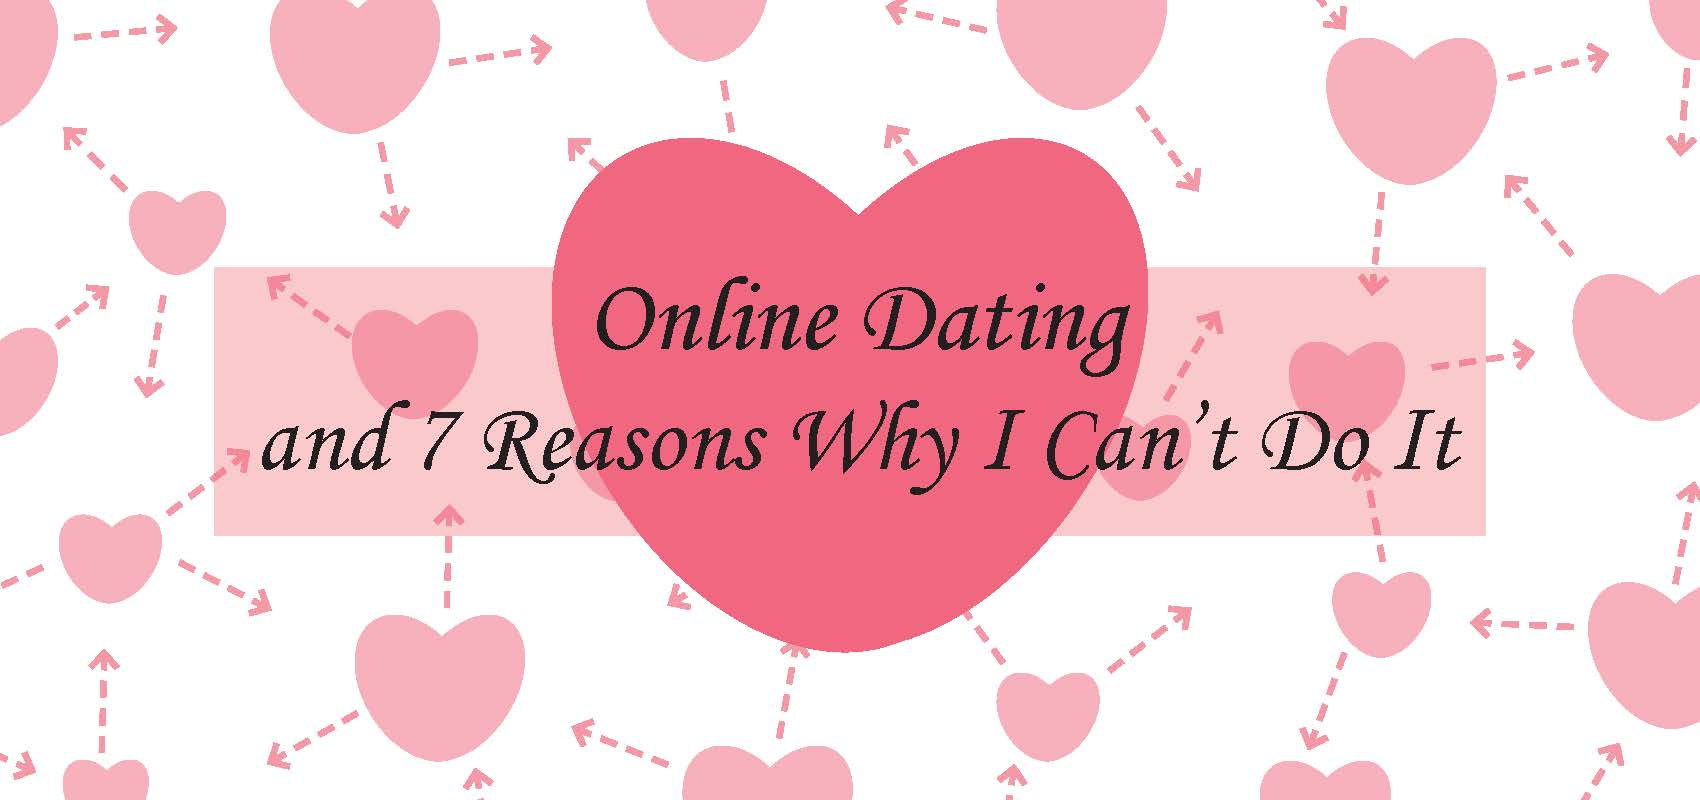 does everyone do online dating The trouble with online dating  everyone has heard it a thousand times before they saw your profile and they didn't believe it any of those times either.